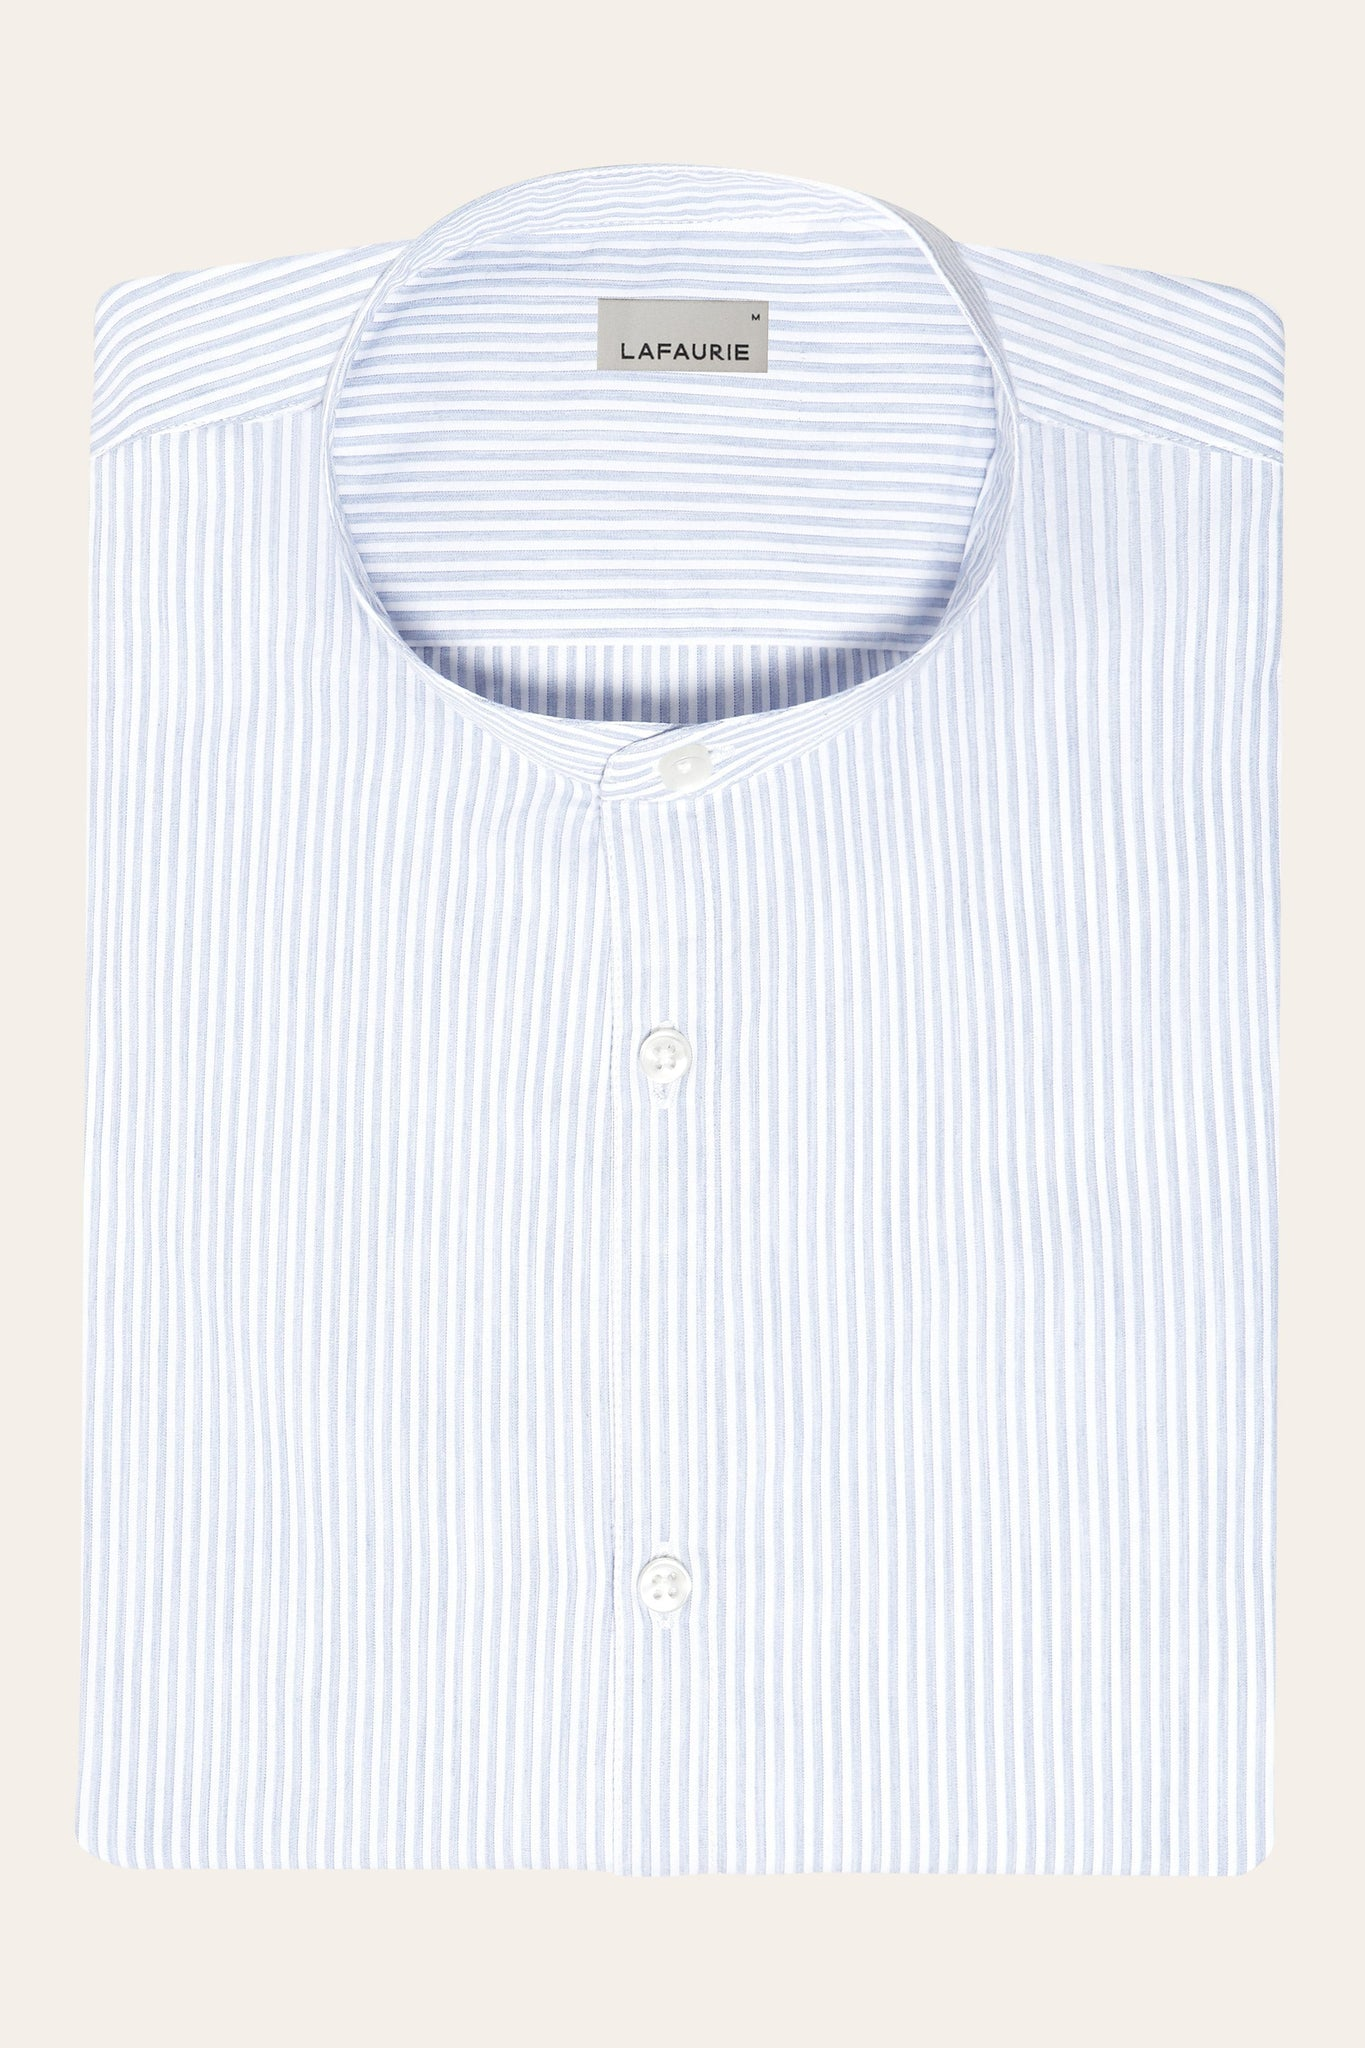 Chemise Rebus - LAFAURIE